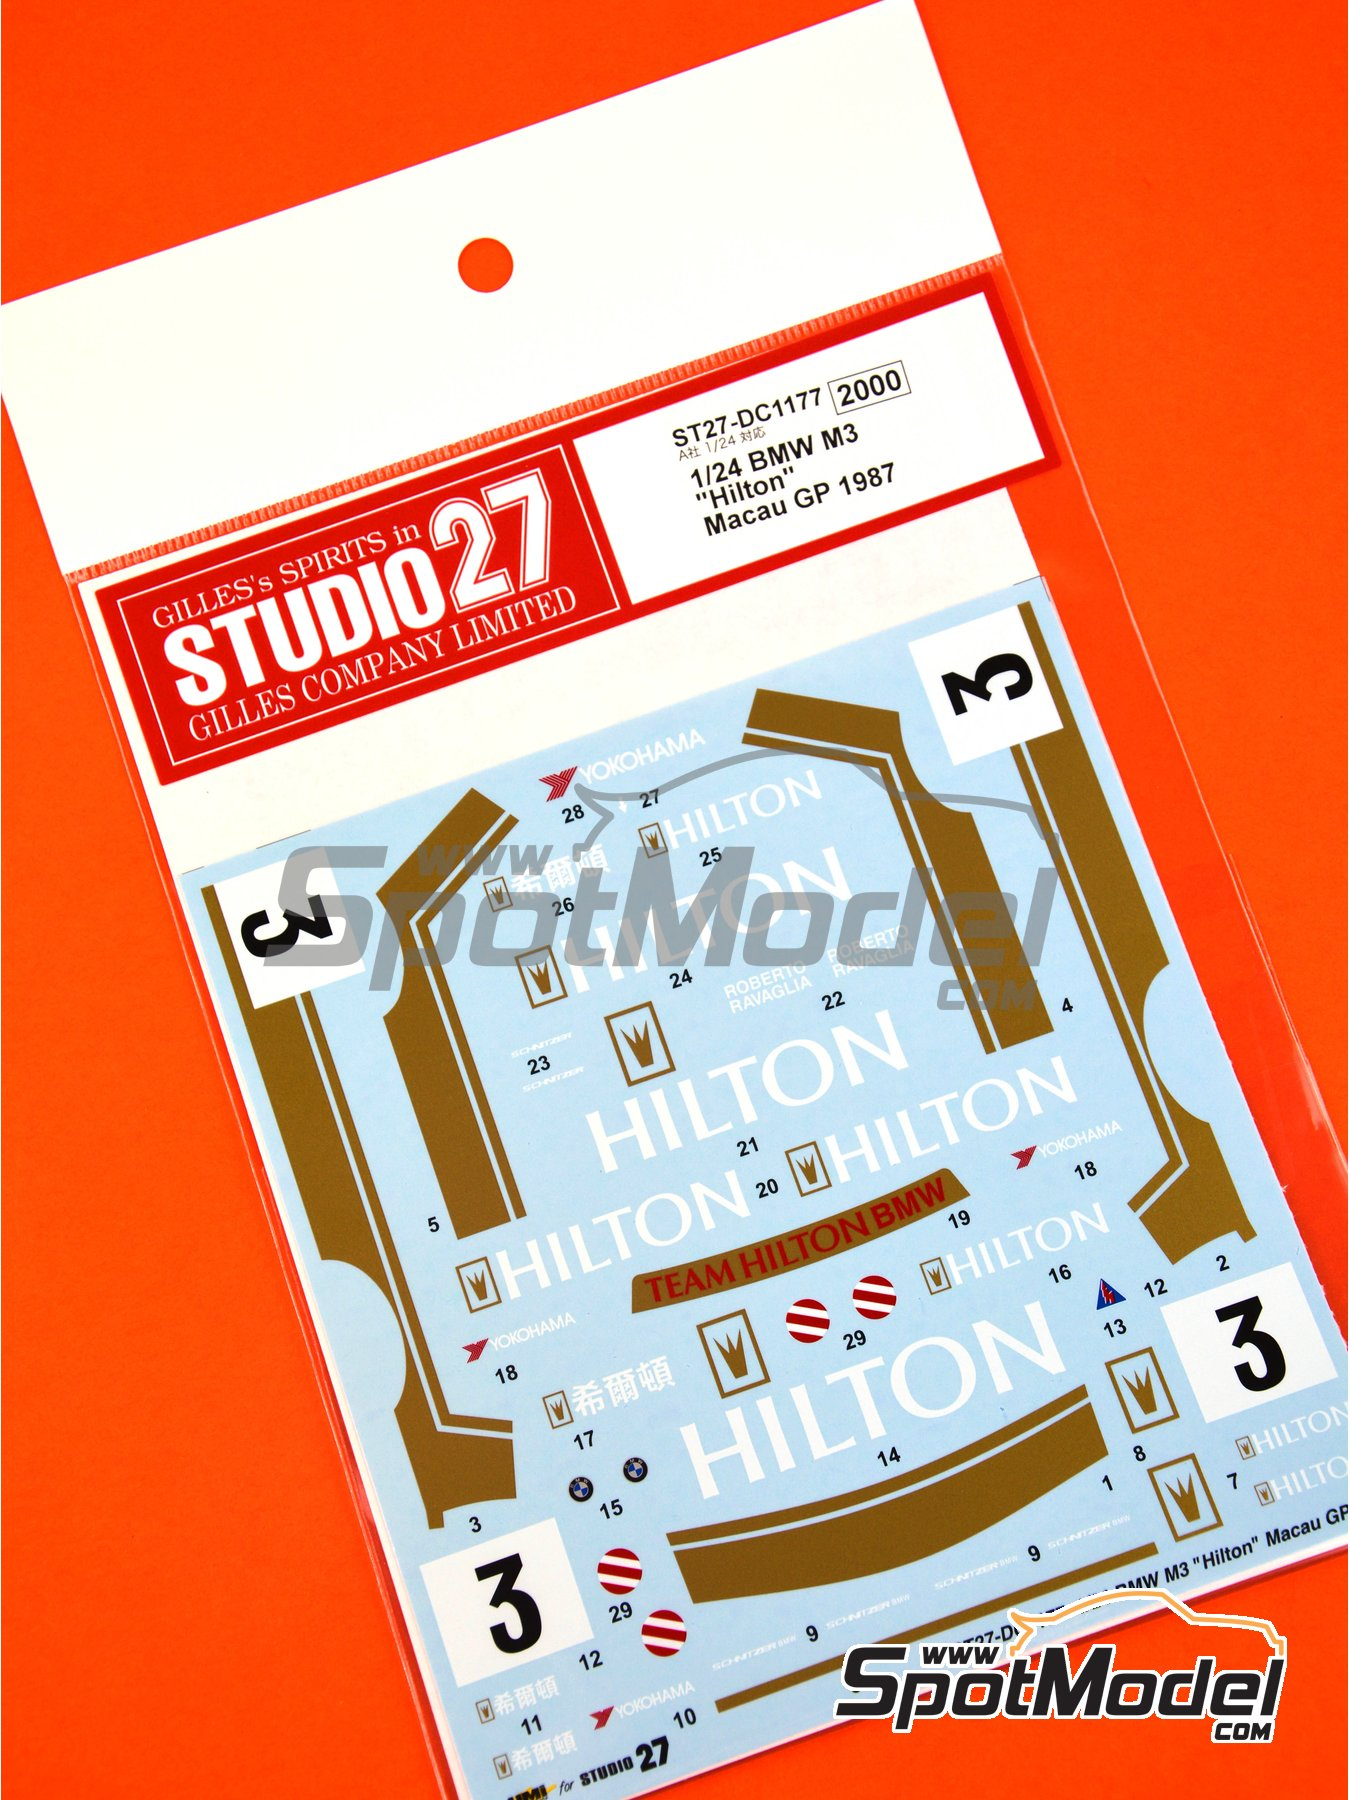 BMW M3 E30 Hilton - Macau Grand Prix 1987 | Marking / livery in 1/24 scale manufactured by Studio27 (ref. ST27-DC1177) image